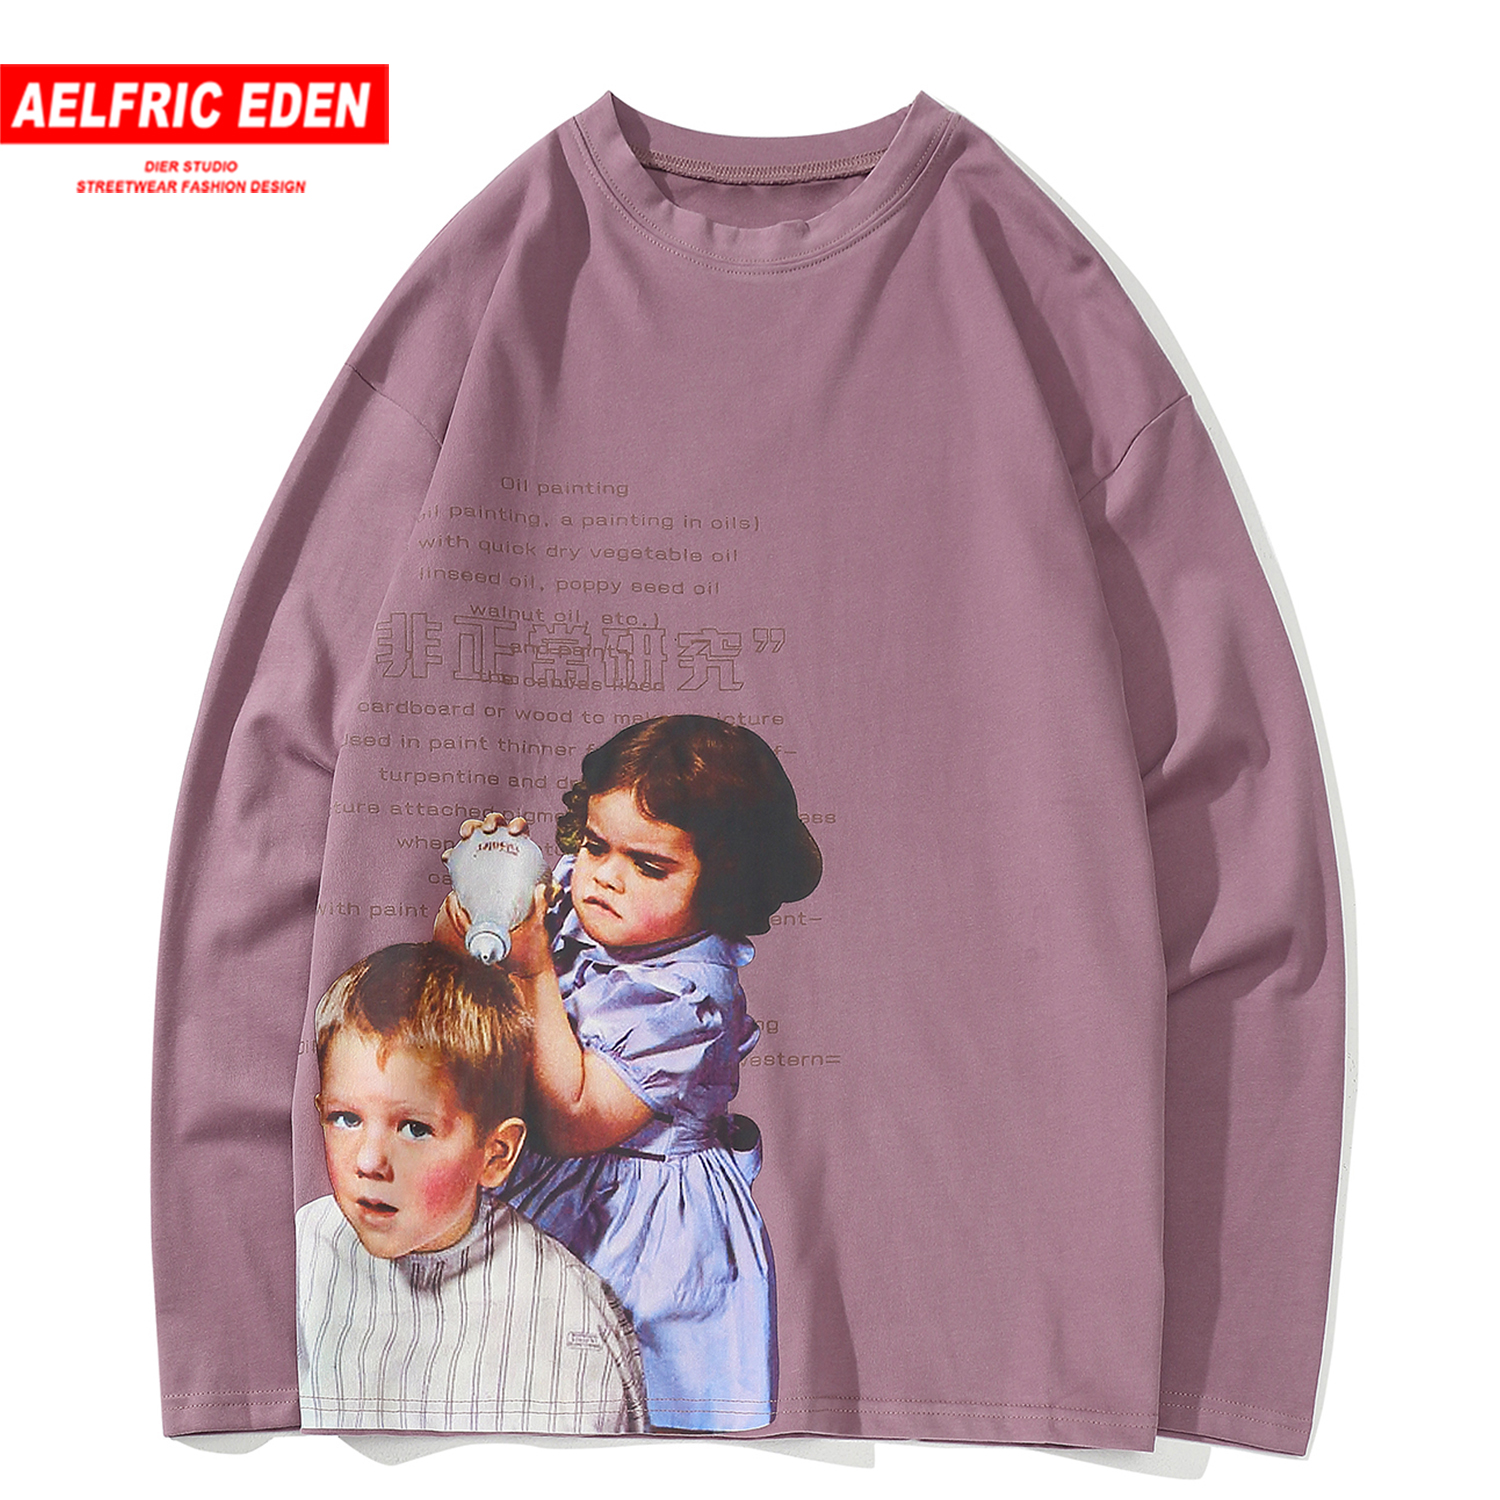 Aelfric Eden Character Printed Sweatshirts Mens 2019 Autumn Harajuku Streetwear Outwear Long Sleeve Casual Cotton Male Pullover